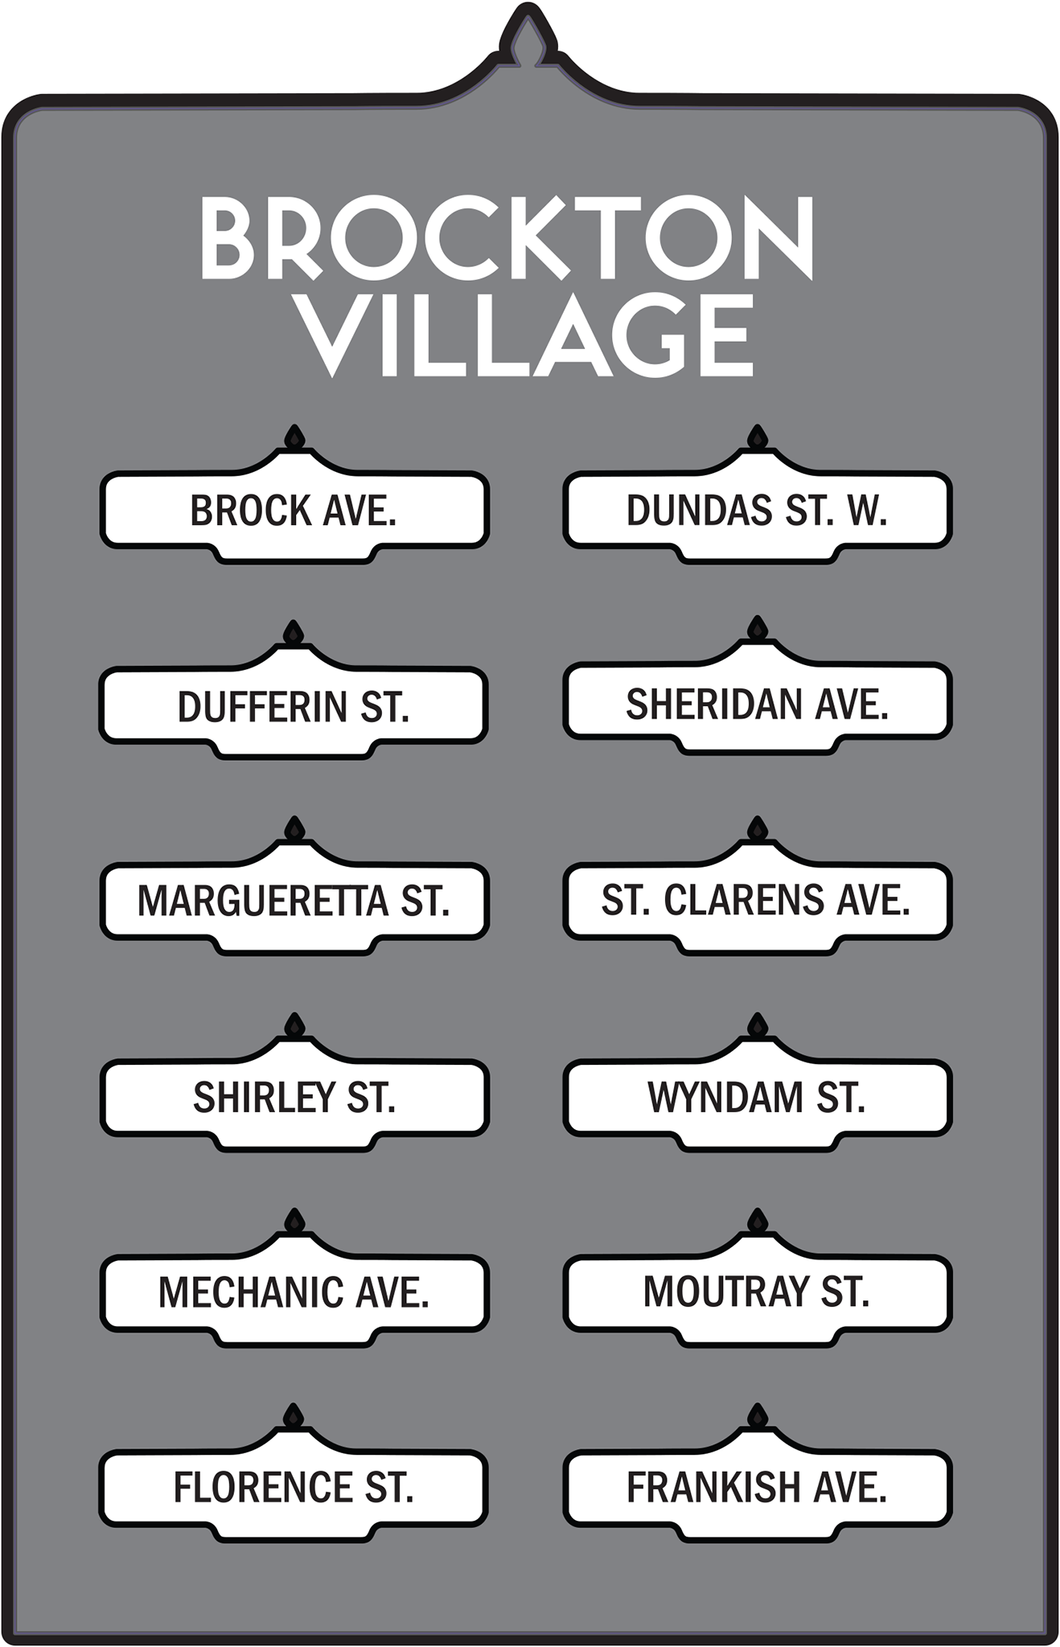 Toronto Street Signs Print: Brockton Village